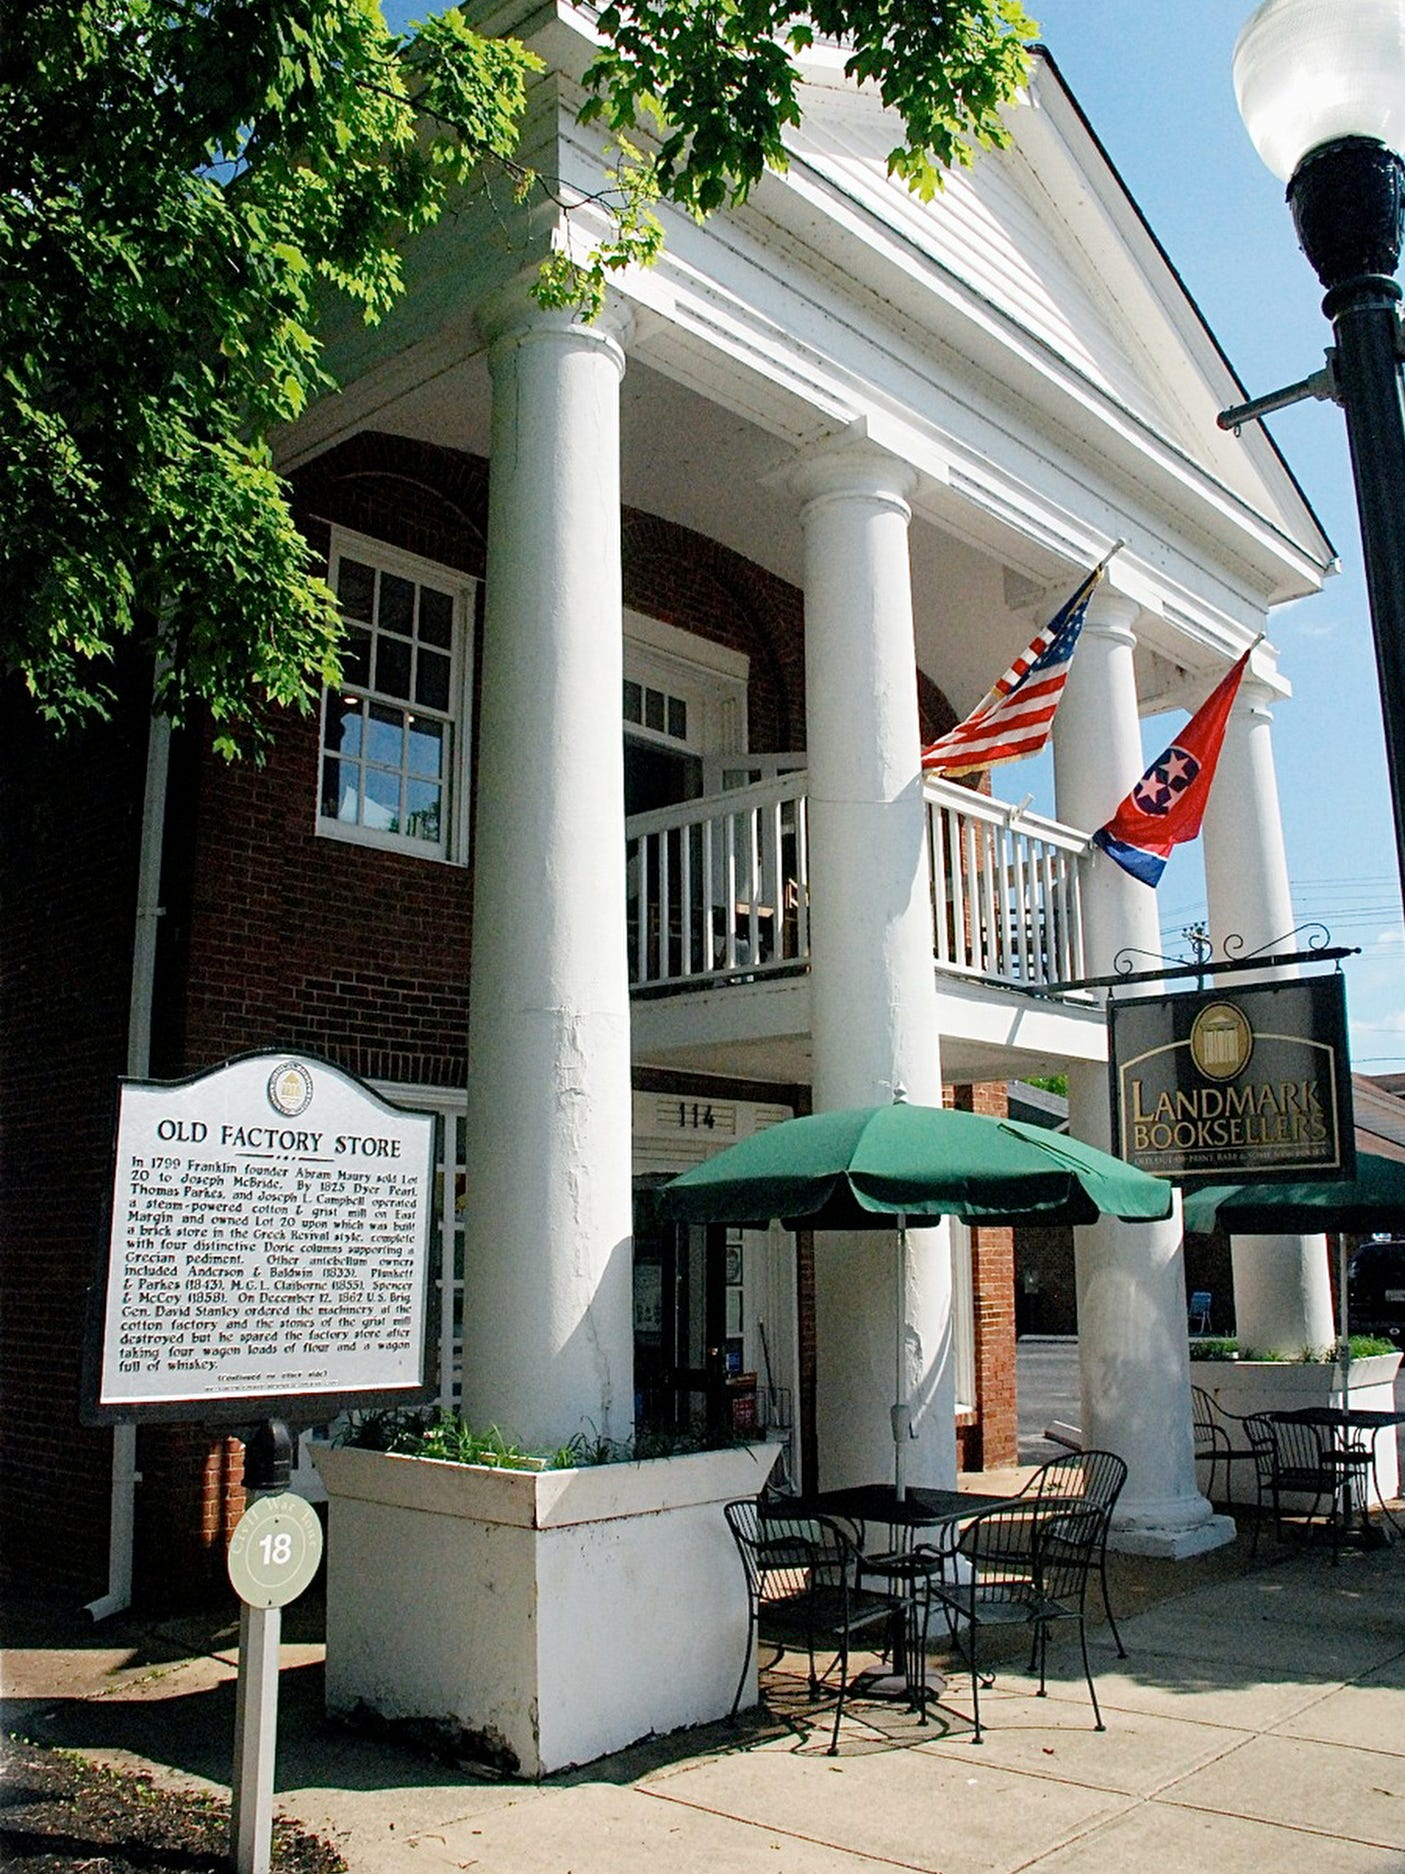 Landmark Booksellers Franklin Tennessee - Road Trip Planner, Road Trips USA, Road Trip America, Road Trips In USA, road trips planning, america road trip, road trip USA, best road trips in America, best road trip stops along I-65